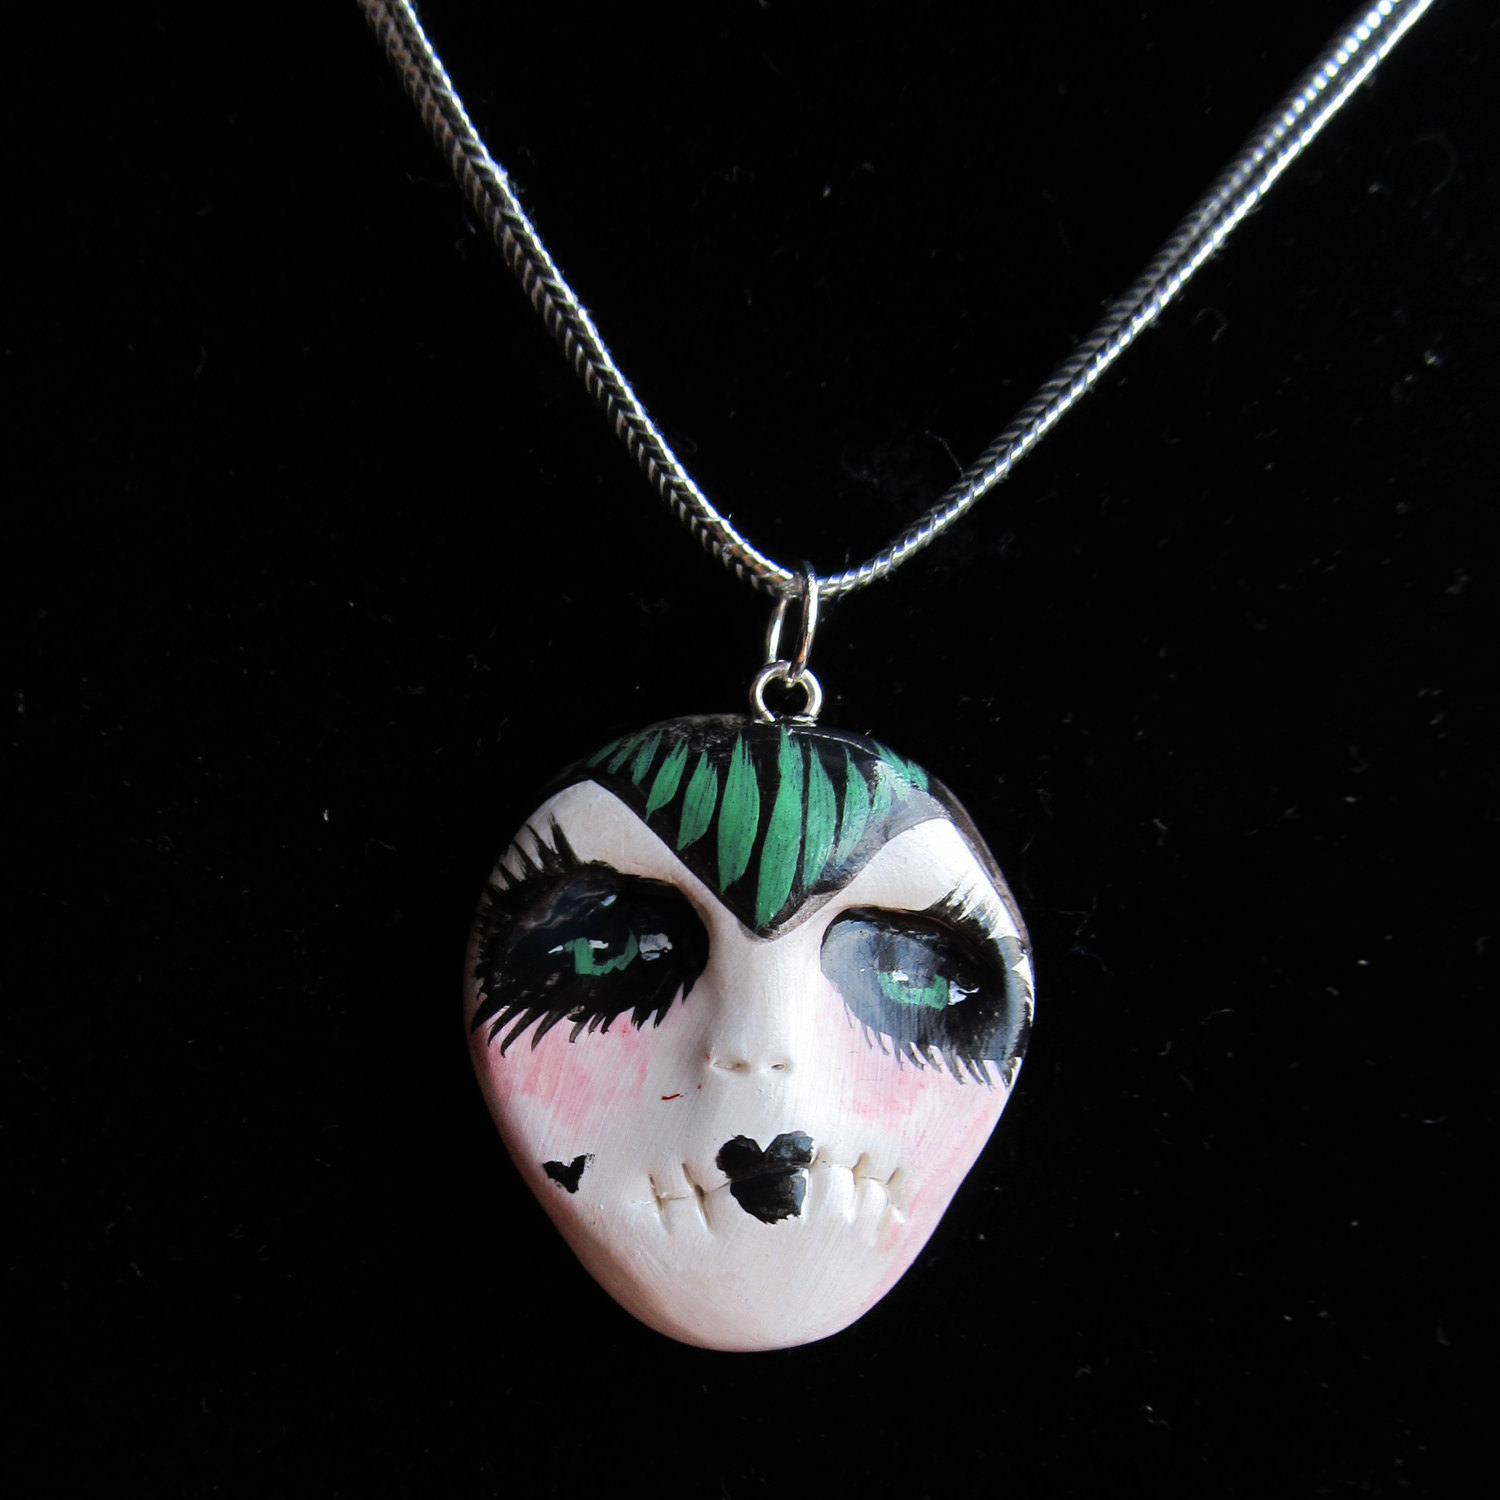 Odd Face Necklace Morbid Jewelry.